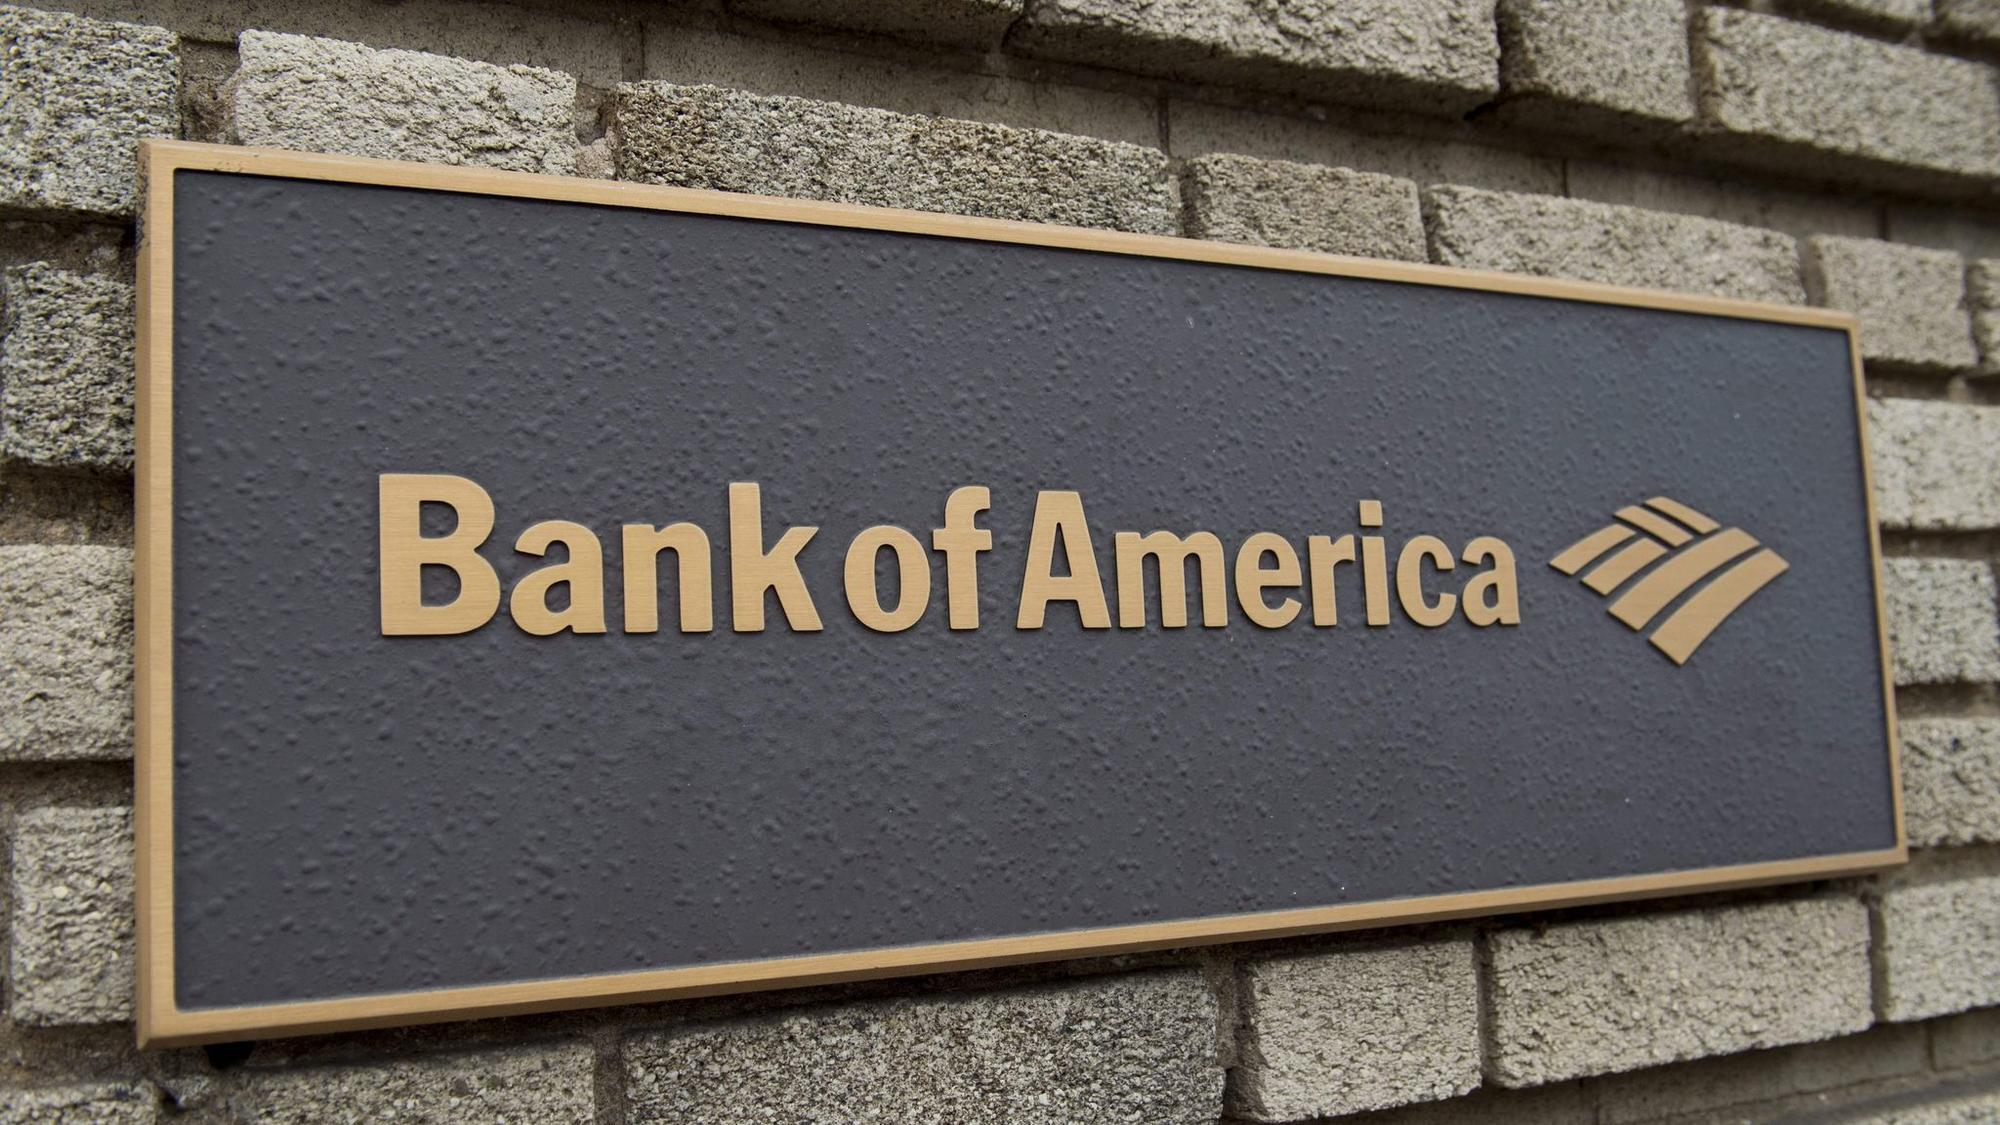 Bank of America and Illinois are cashing in by squeezing low-income customers